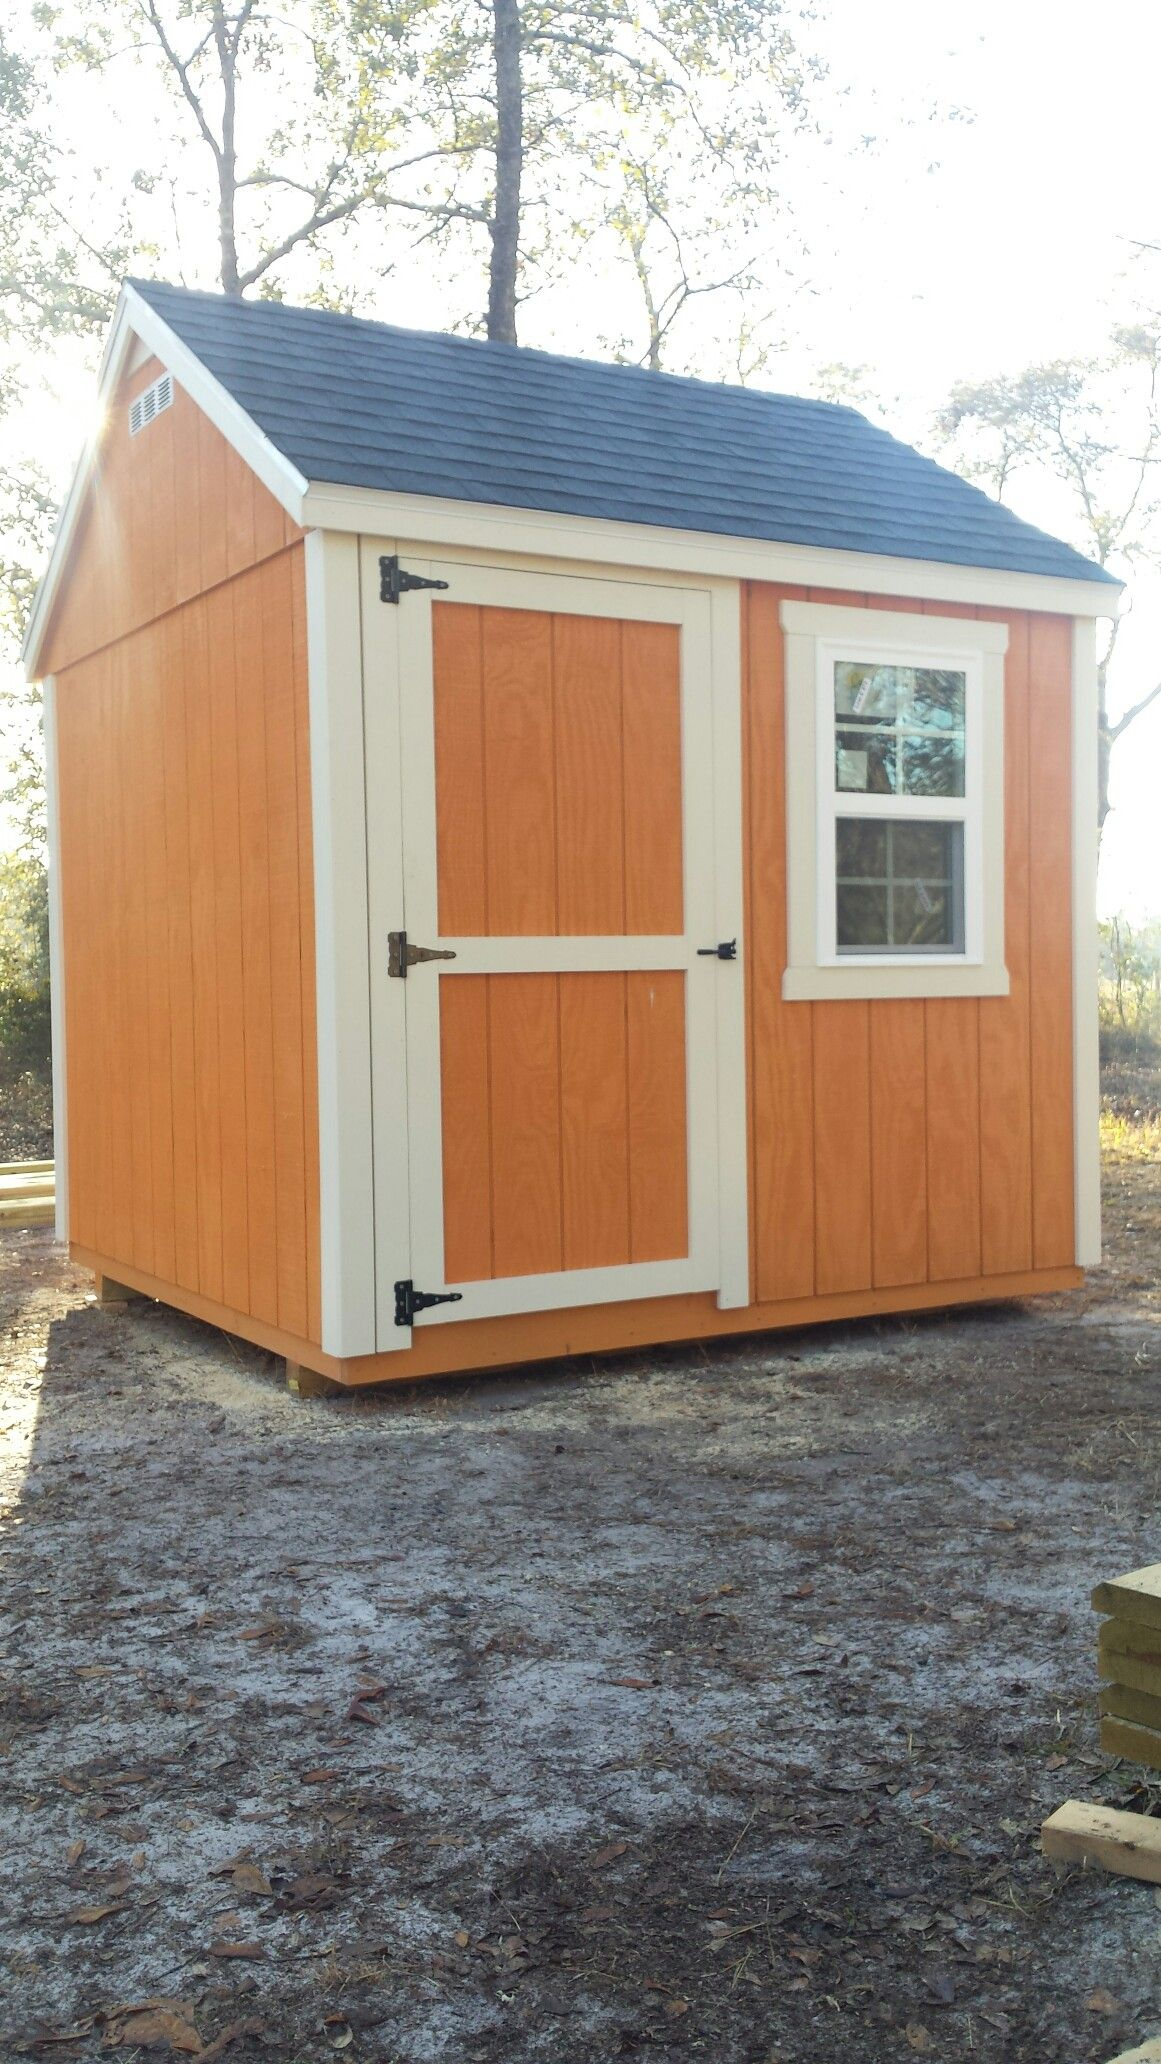 Deluxe with dormer transom windows and cupola - 8x8 Deluxe With Loft Stayman Woodworks Staymanrenovation Com